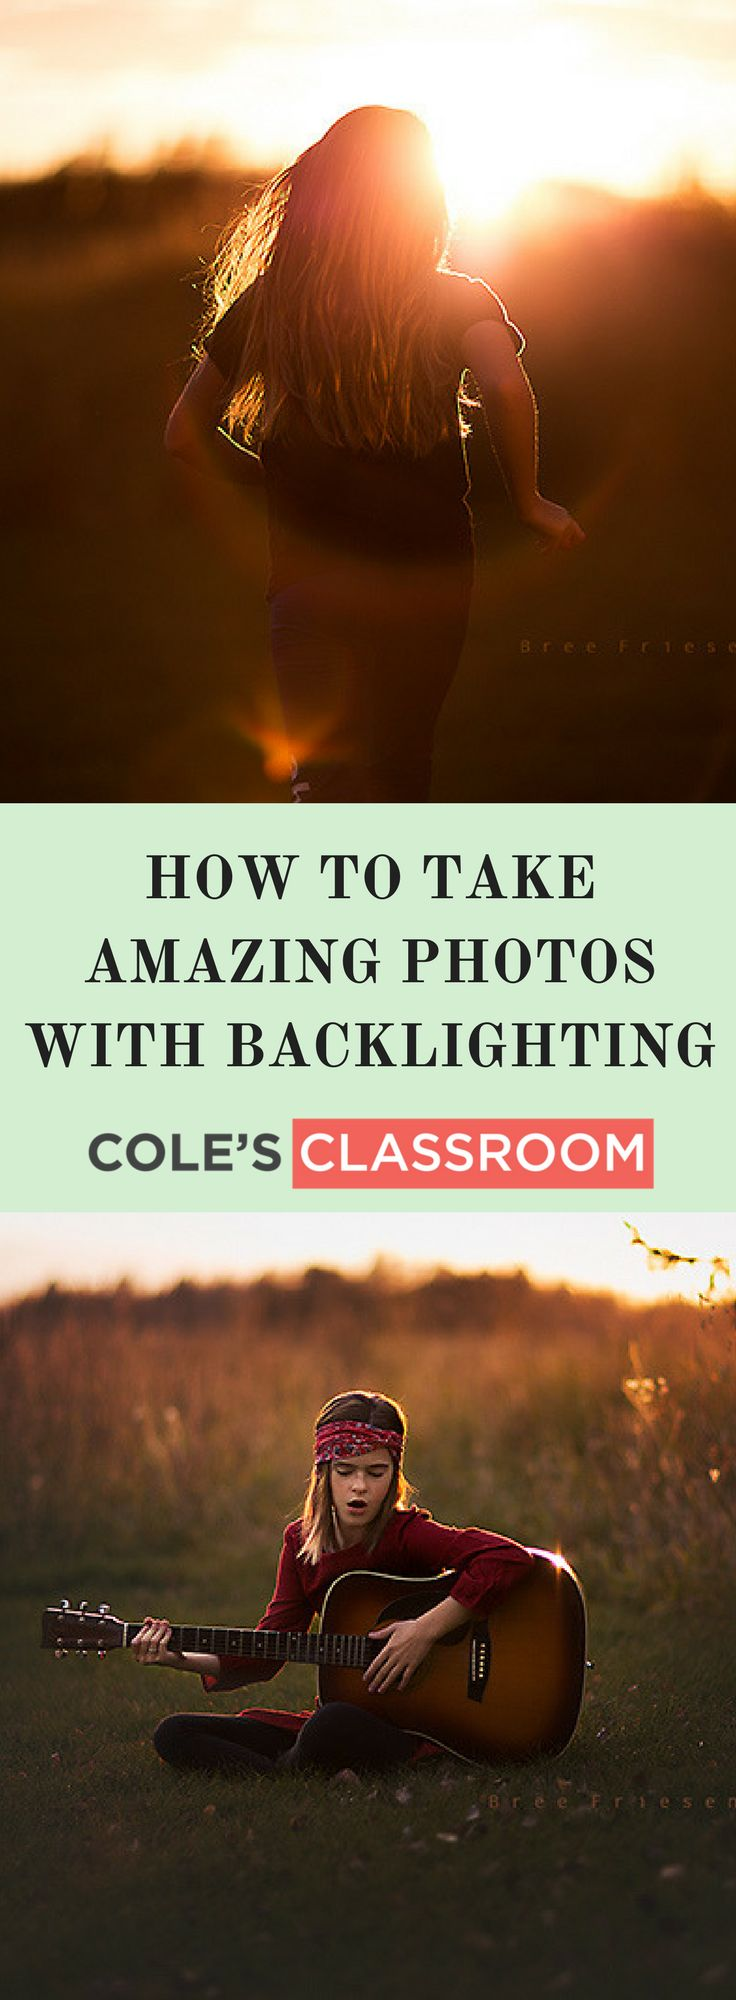 Braving the Backlight: How to Take Amazing Photos with Backlighting. Learn more at: https://www.colesclassroom.com/braving-backlight-take-amazing-photos-backlighting/